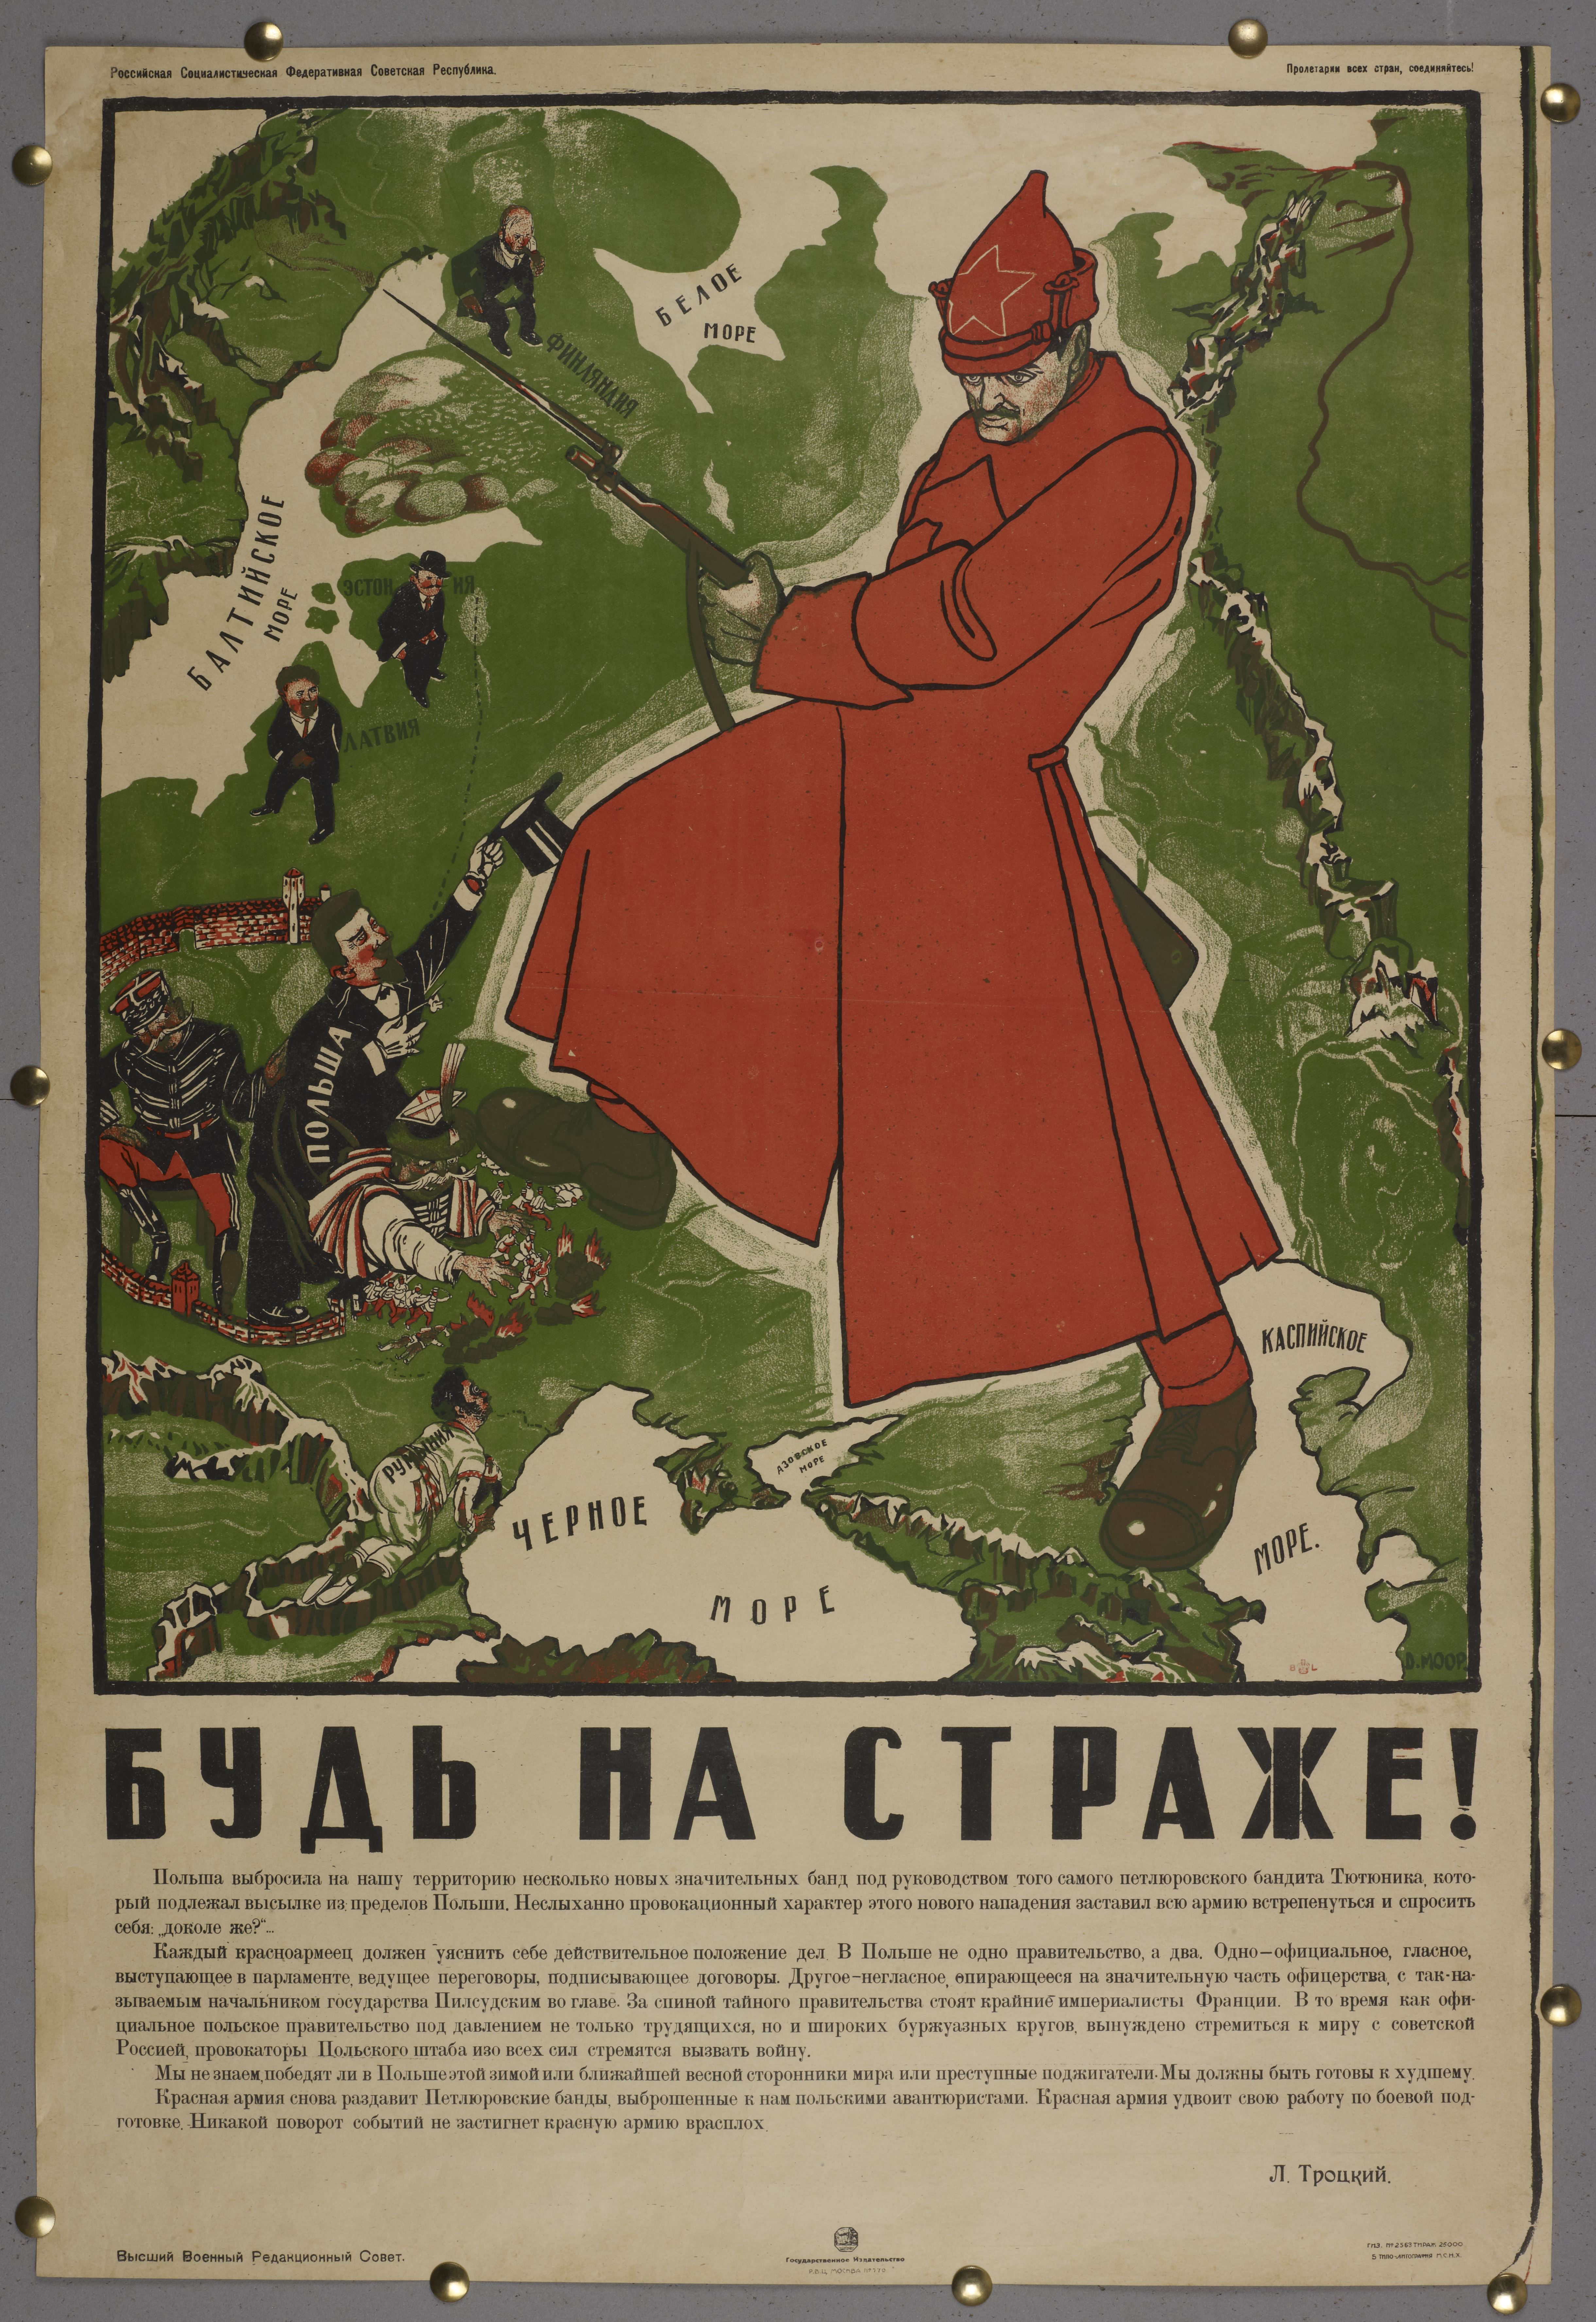 How did the Russian Revolution change world history?